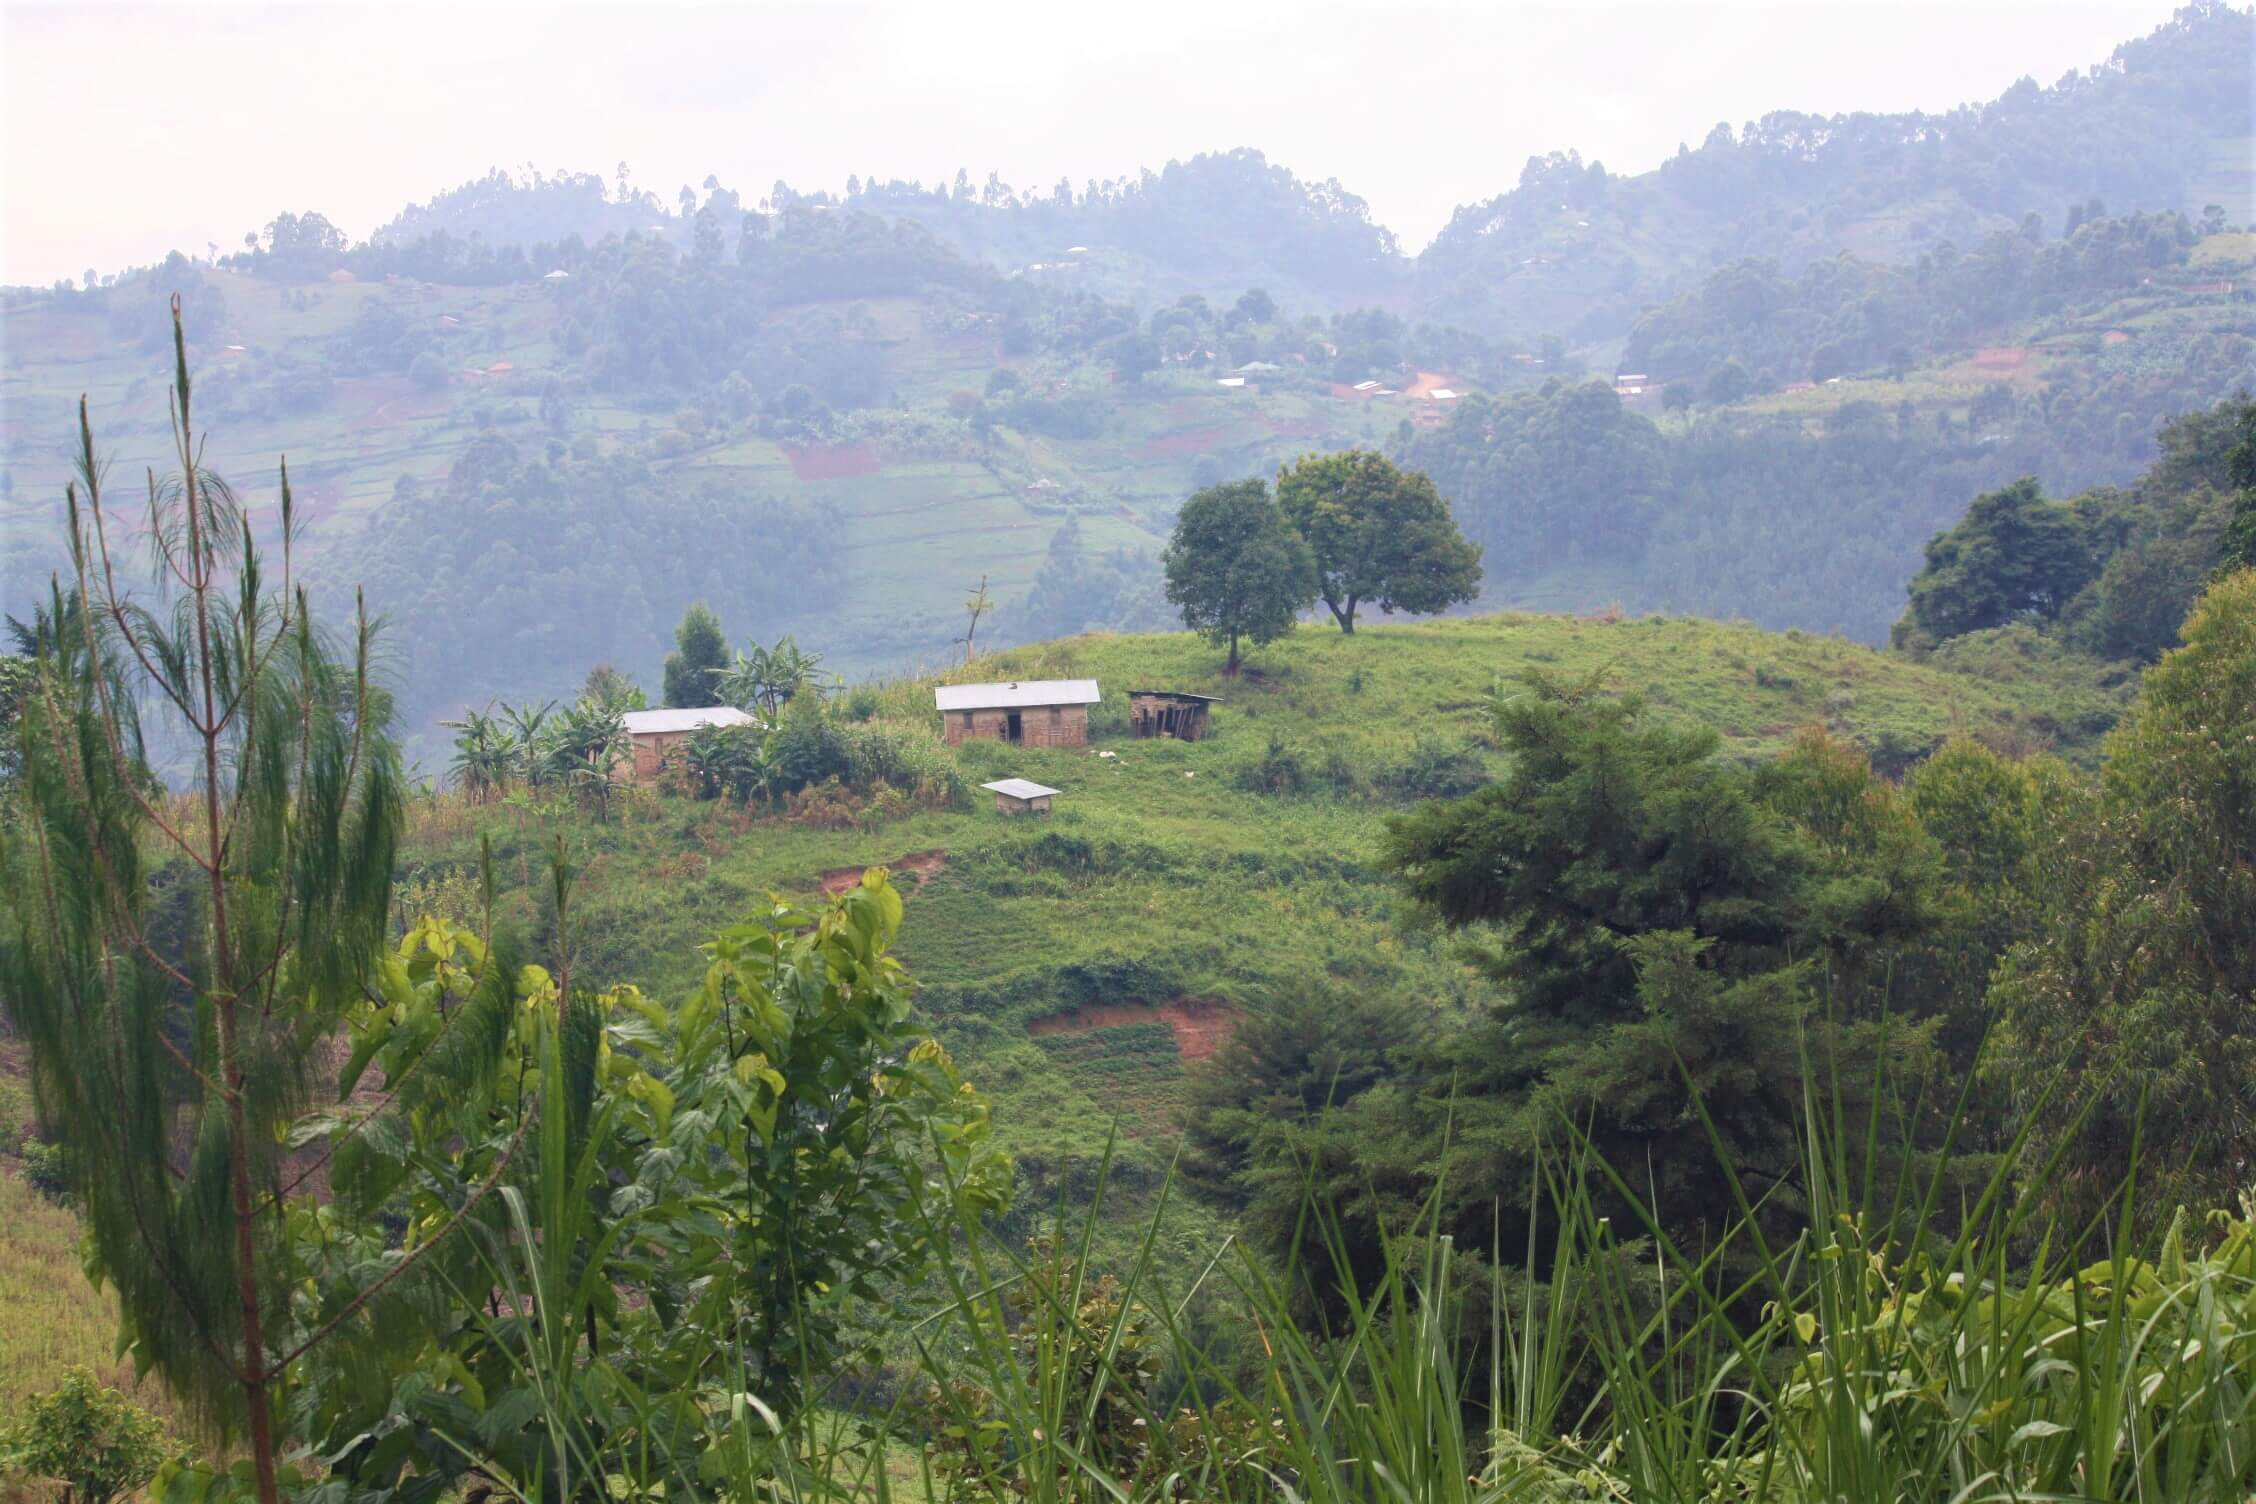 Ugandan farm land seen during trek